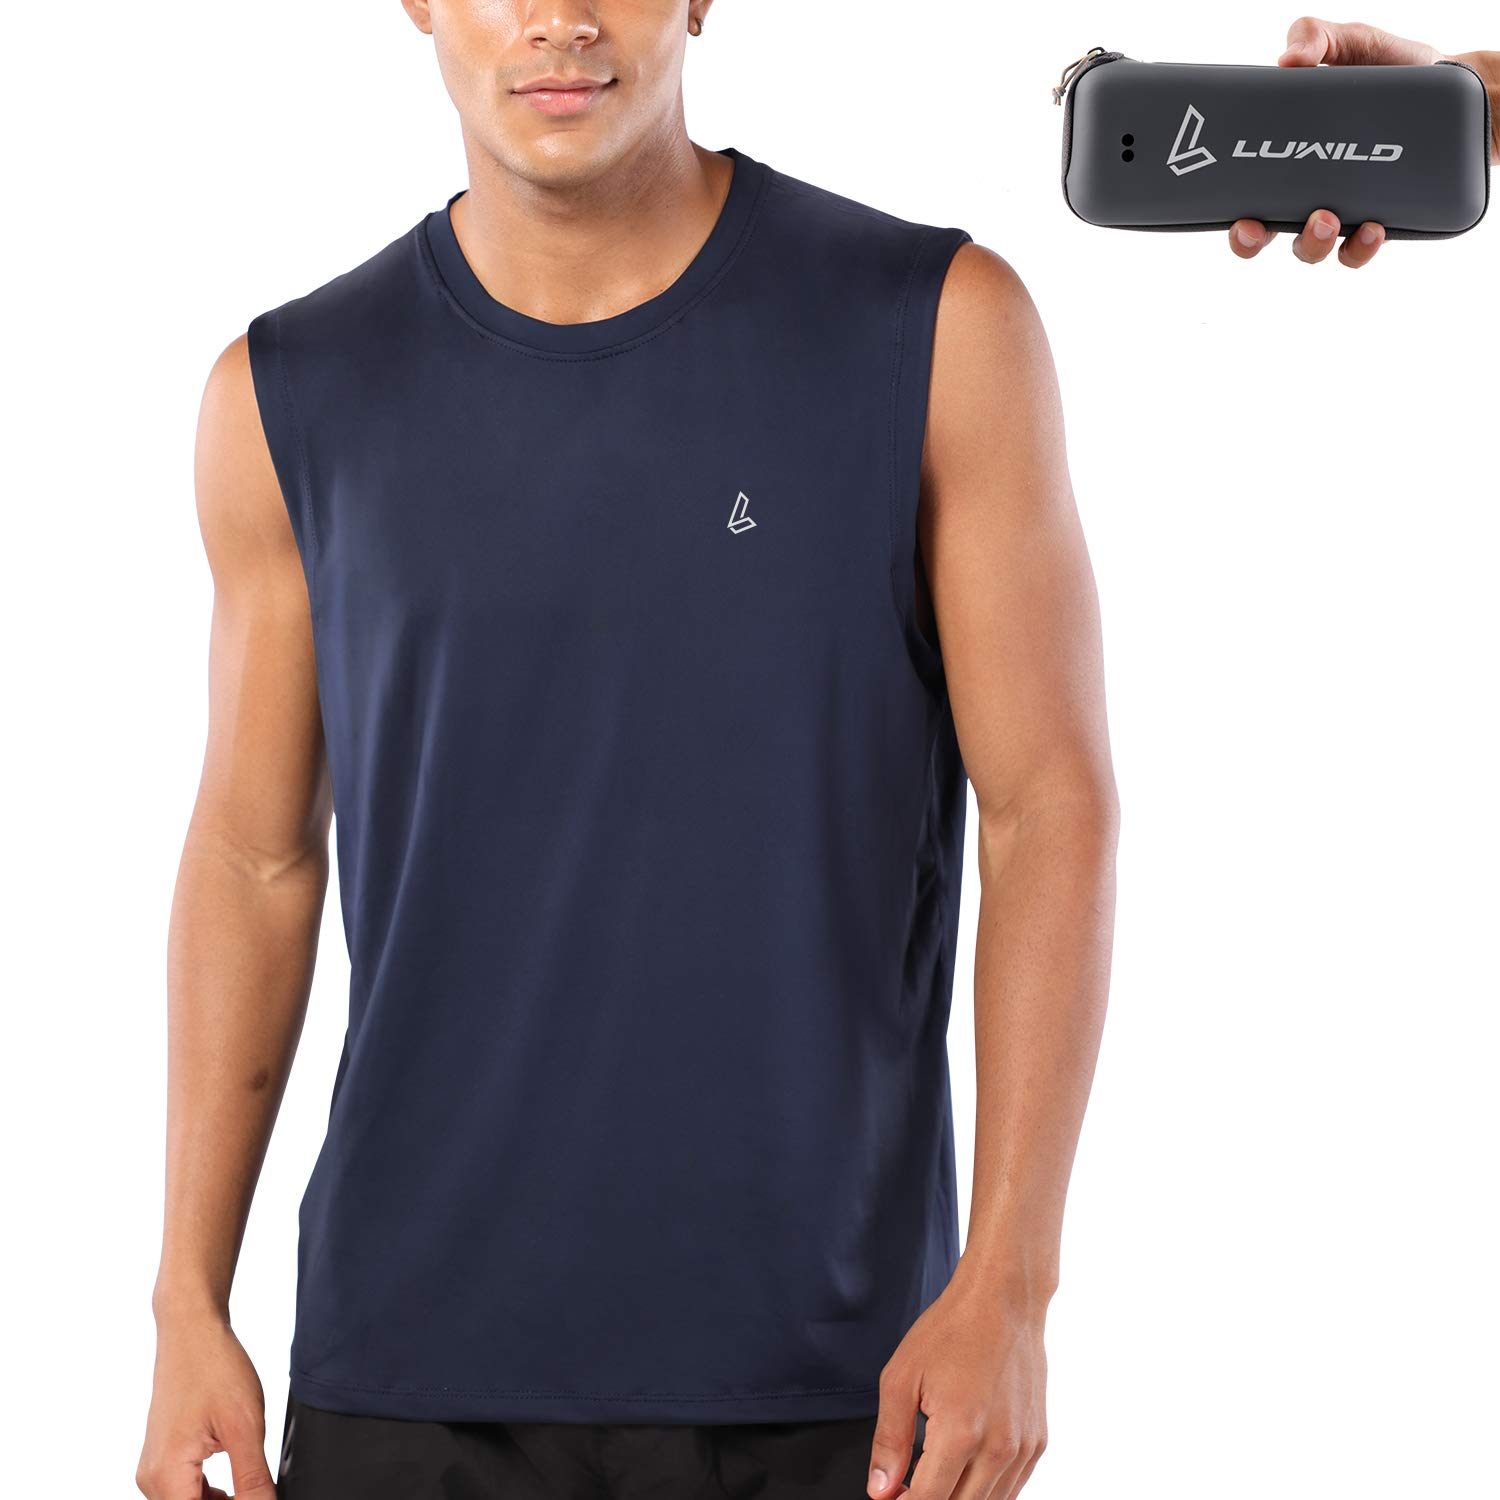 LUWILD Men's Sleeveless Workout Shirts Quick-Dry Basketball Muscle Tank Top with Portable Case by LUWILD